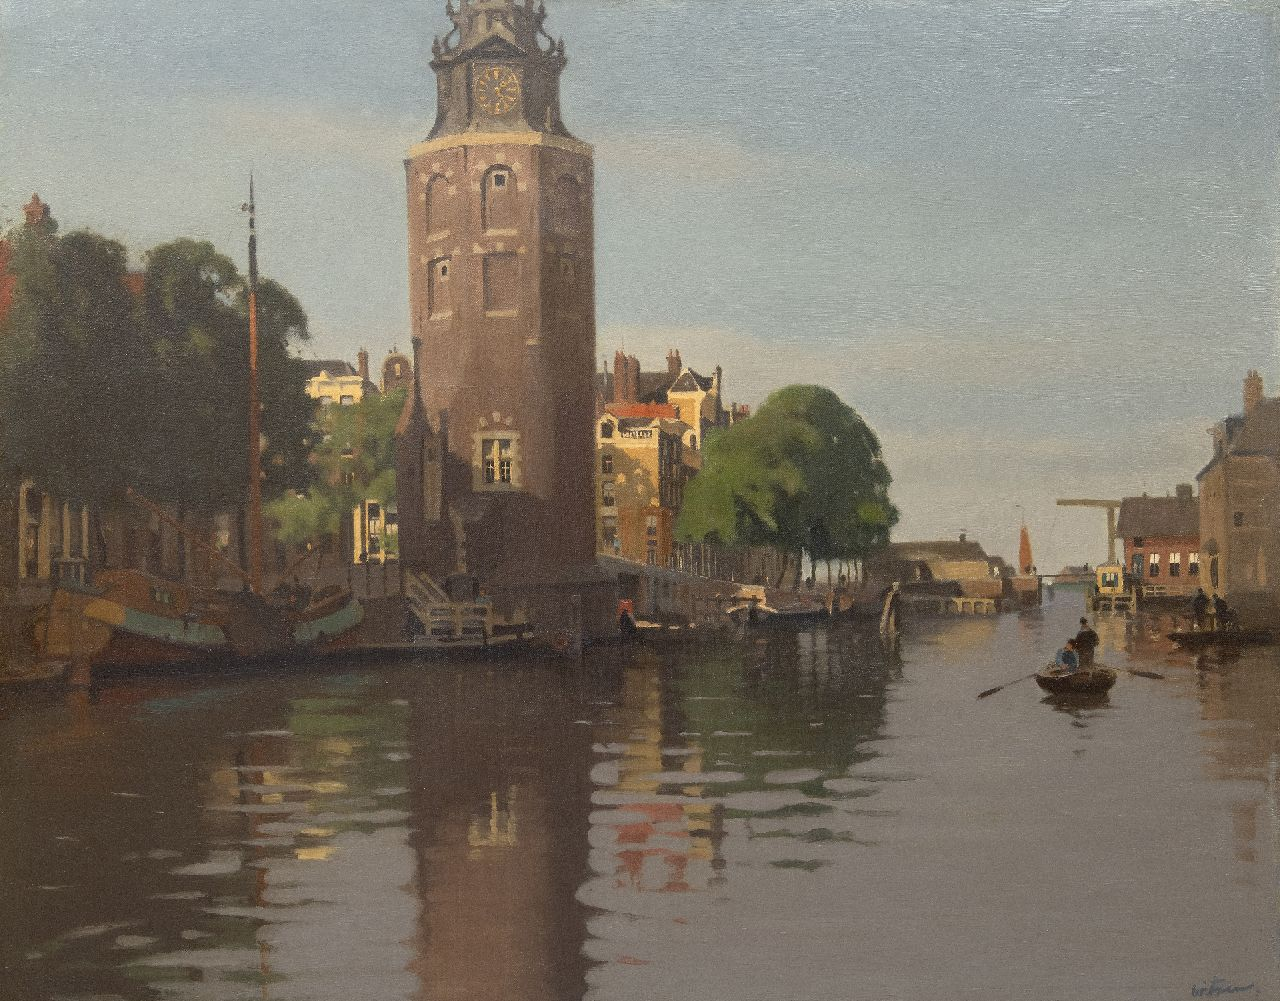 Witsen W.A.  | 'Willem' Arnold Witsen | Paintings offered for sale | The Montelbaanstoren on the Oude Schans in summer, oil on canvas 79.7 x 100.6 cm, signed l.r. and painted ca. 1913